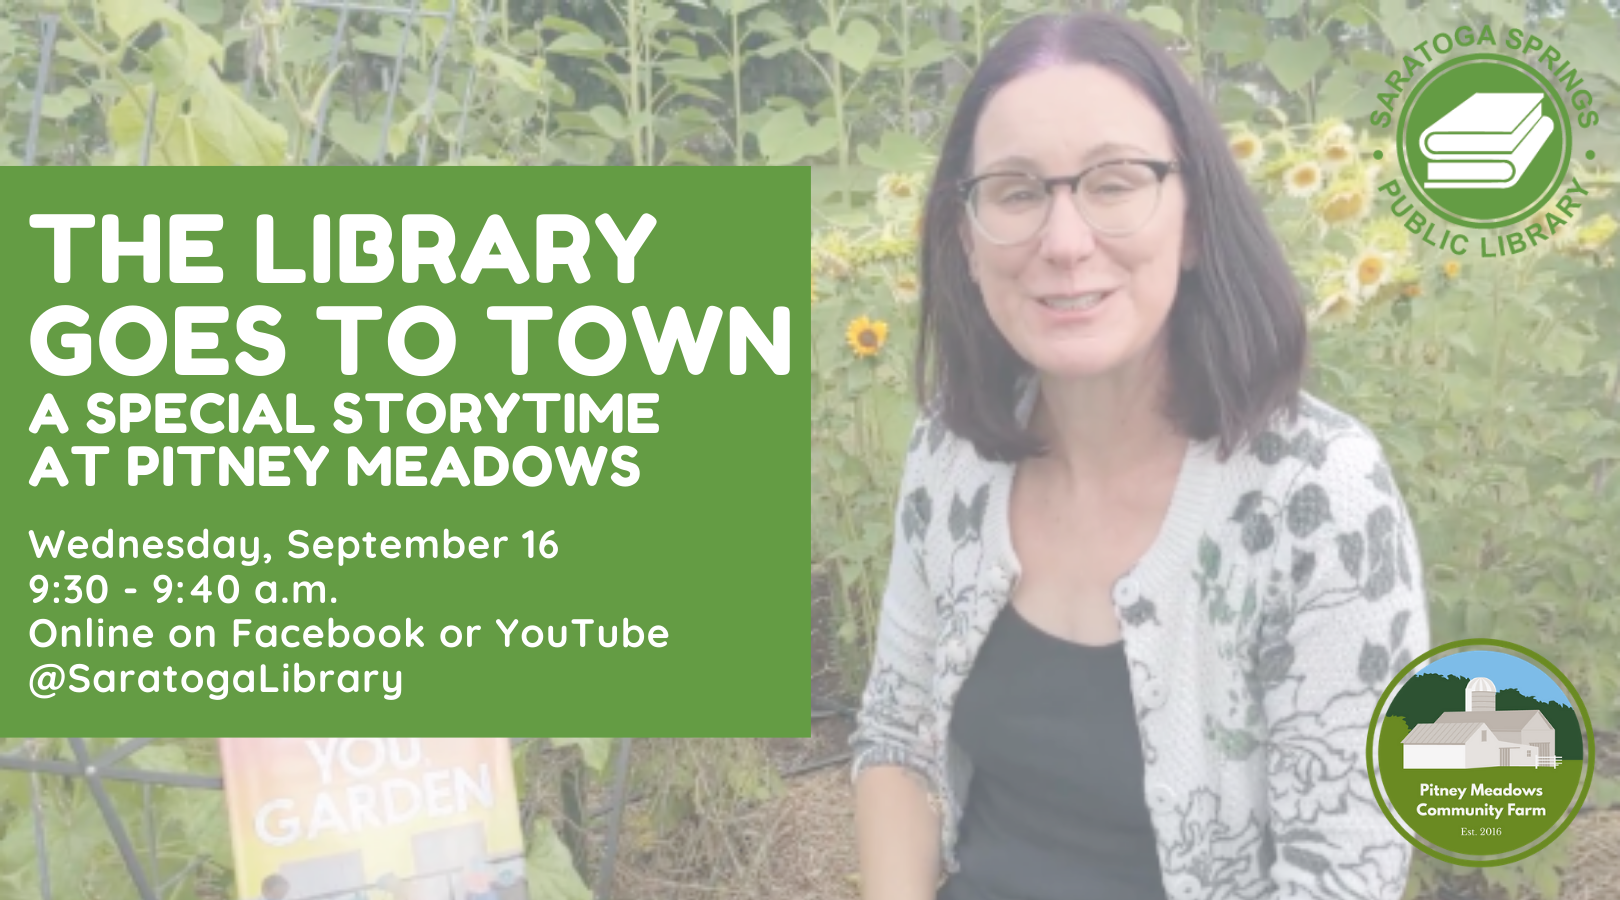 Library Goes to Town (Virtually) at Pitney Meadows